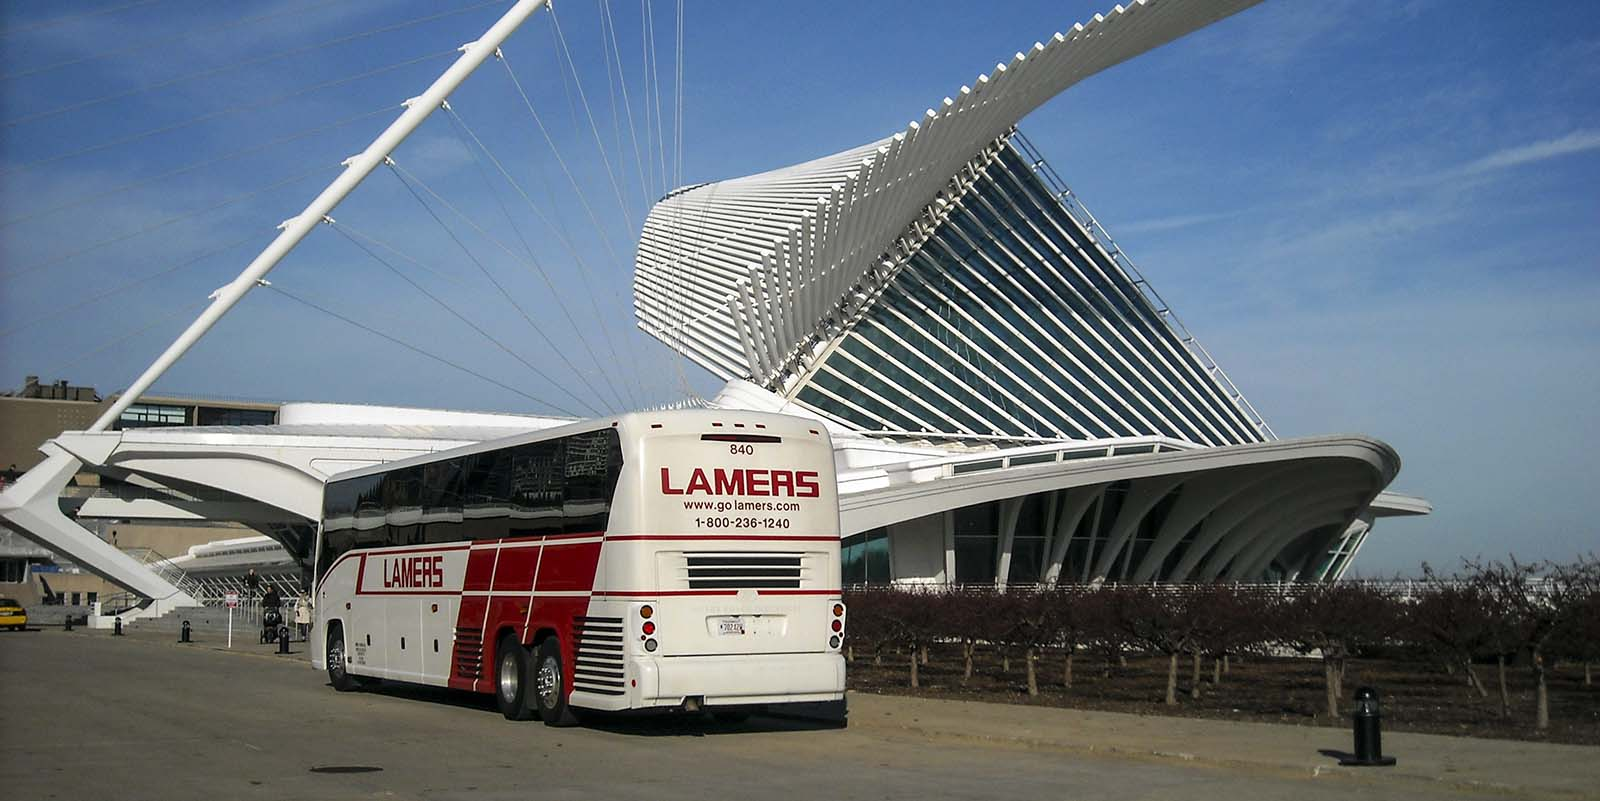 5 Lamers Bus Wraps That Look Awesome